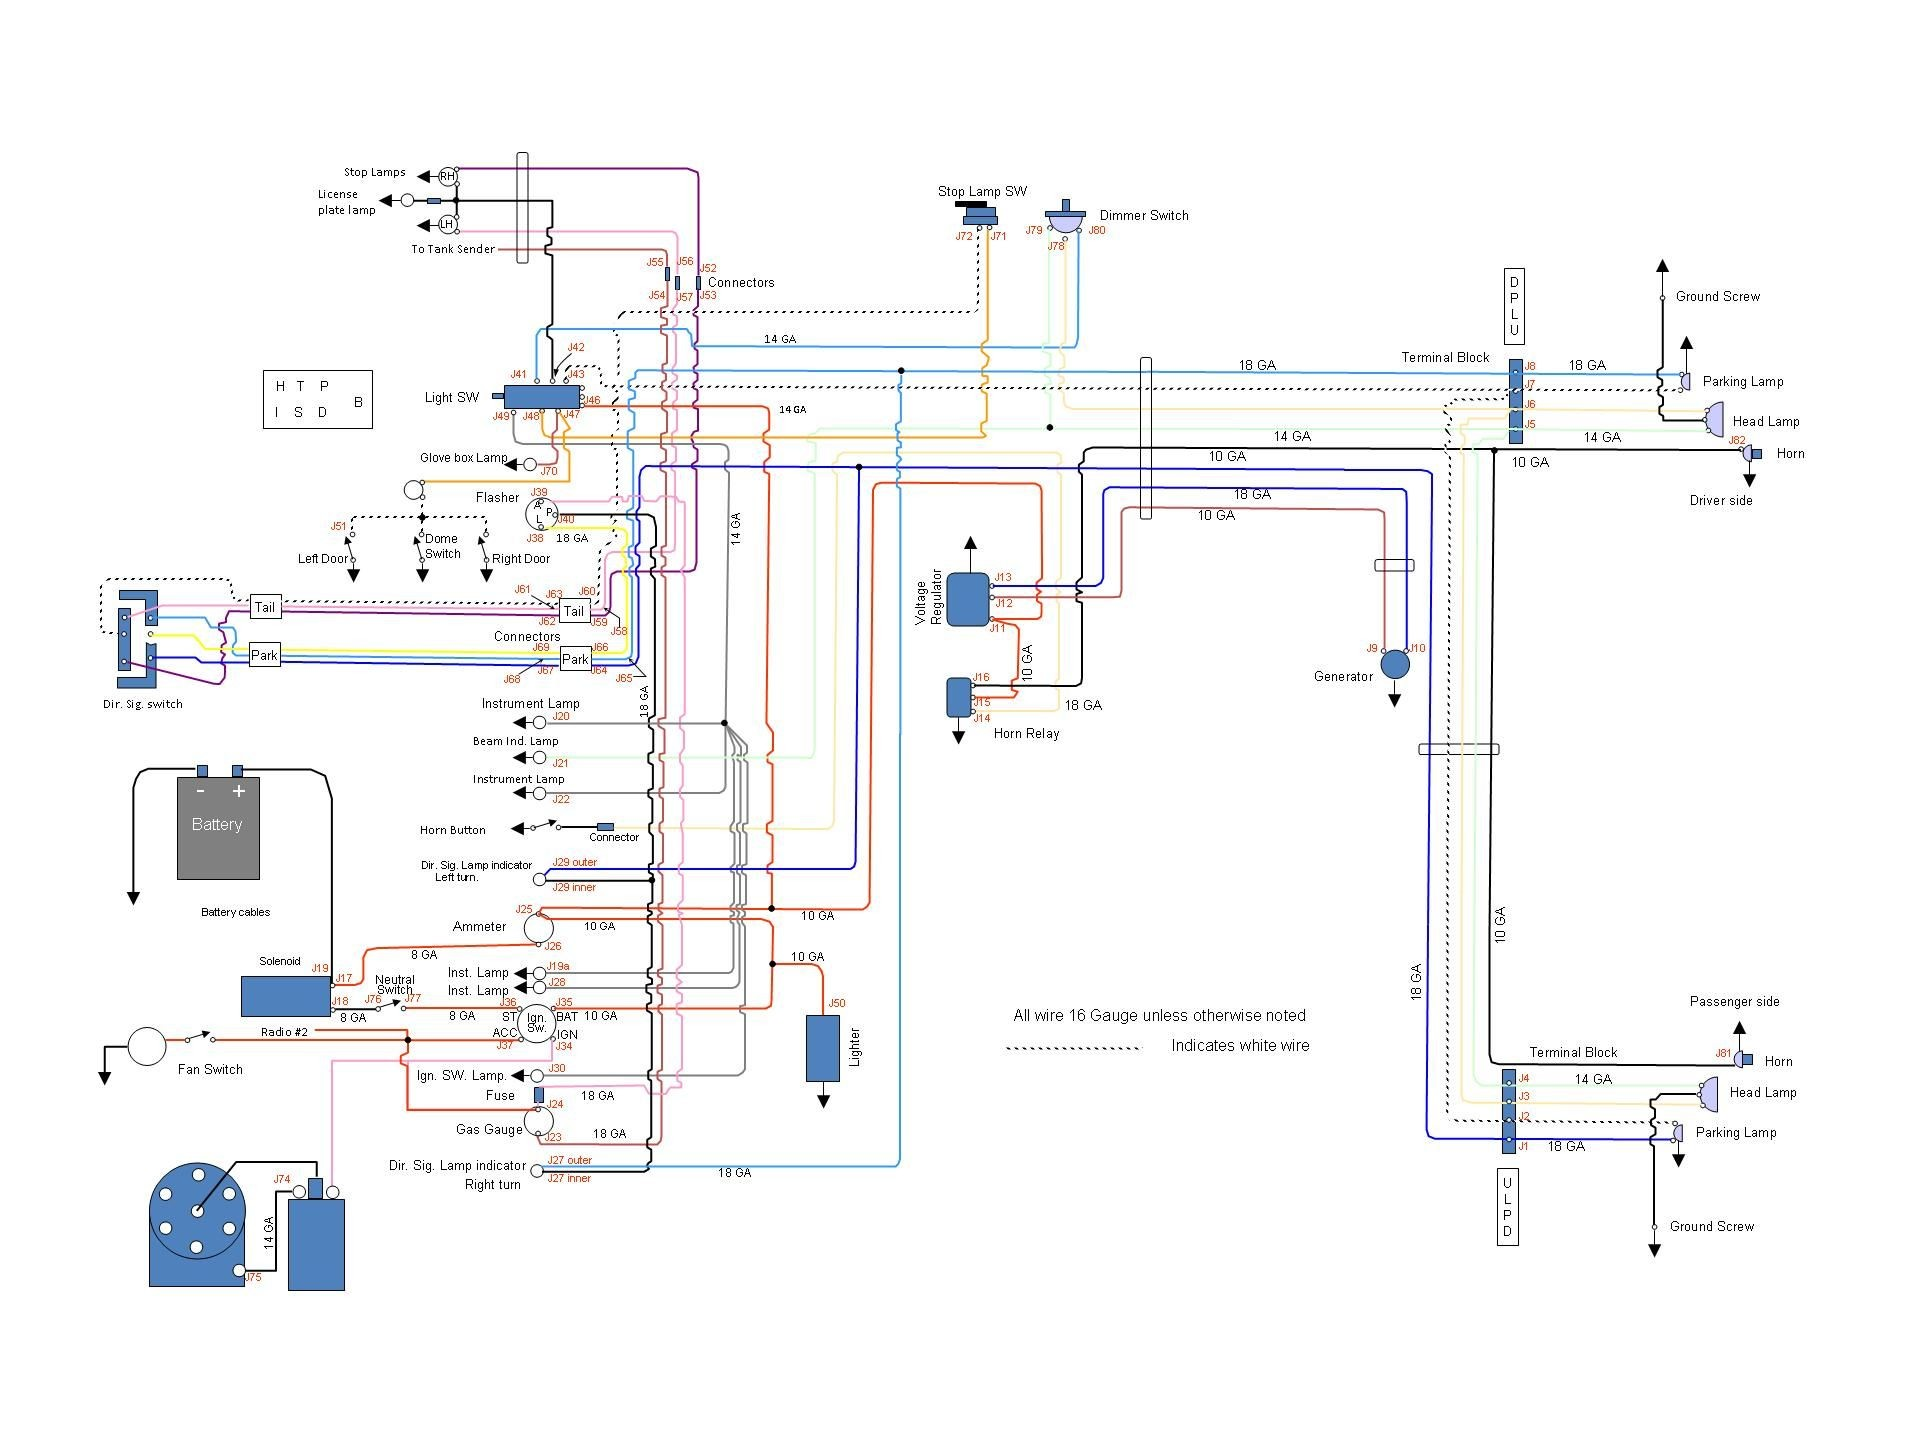 Truck Air Brakes Diagram Diagram Moreover Kitchen Electrical Wiring Diagram Moreover Wemo Of Truck Air Brakes Diagram